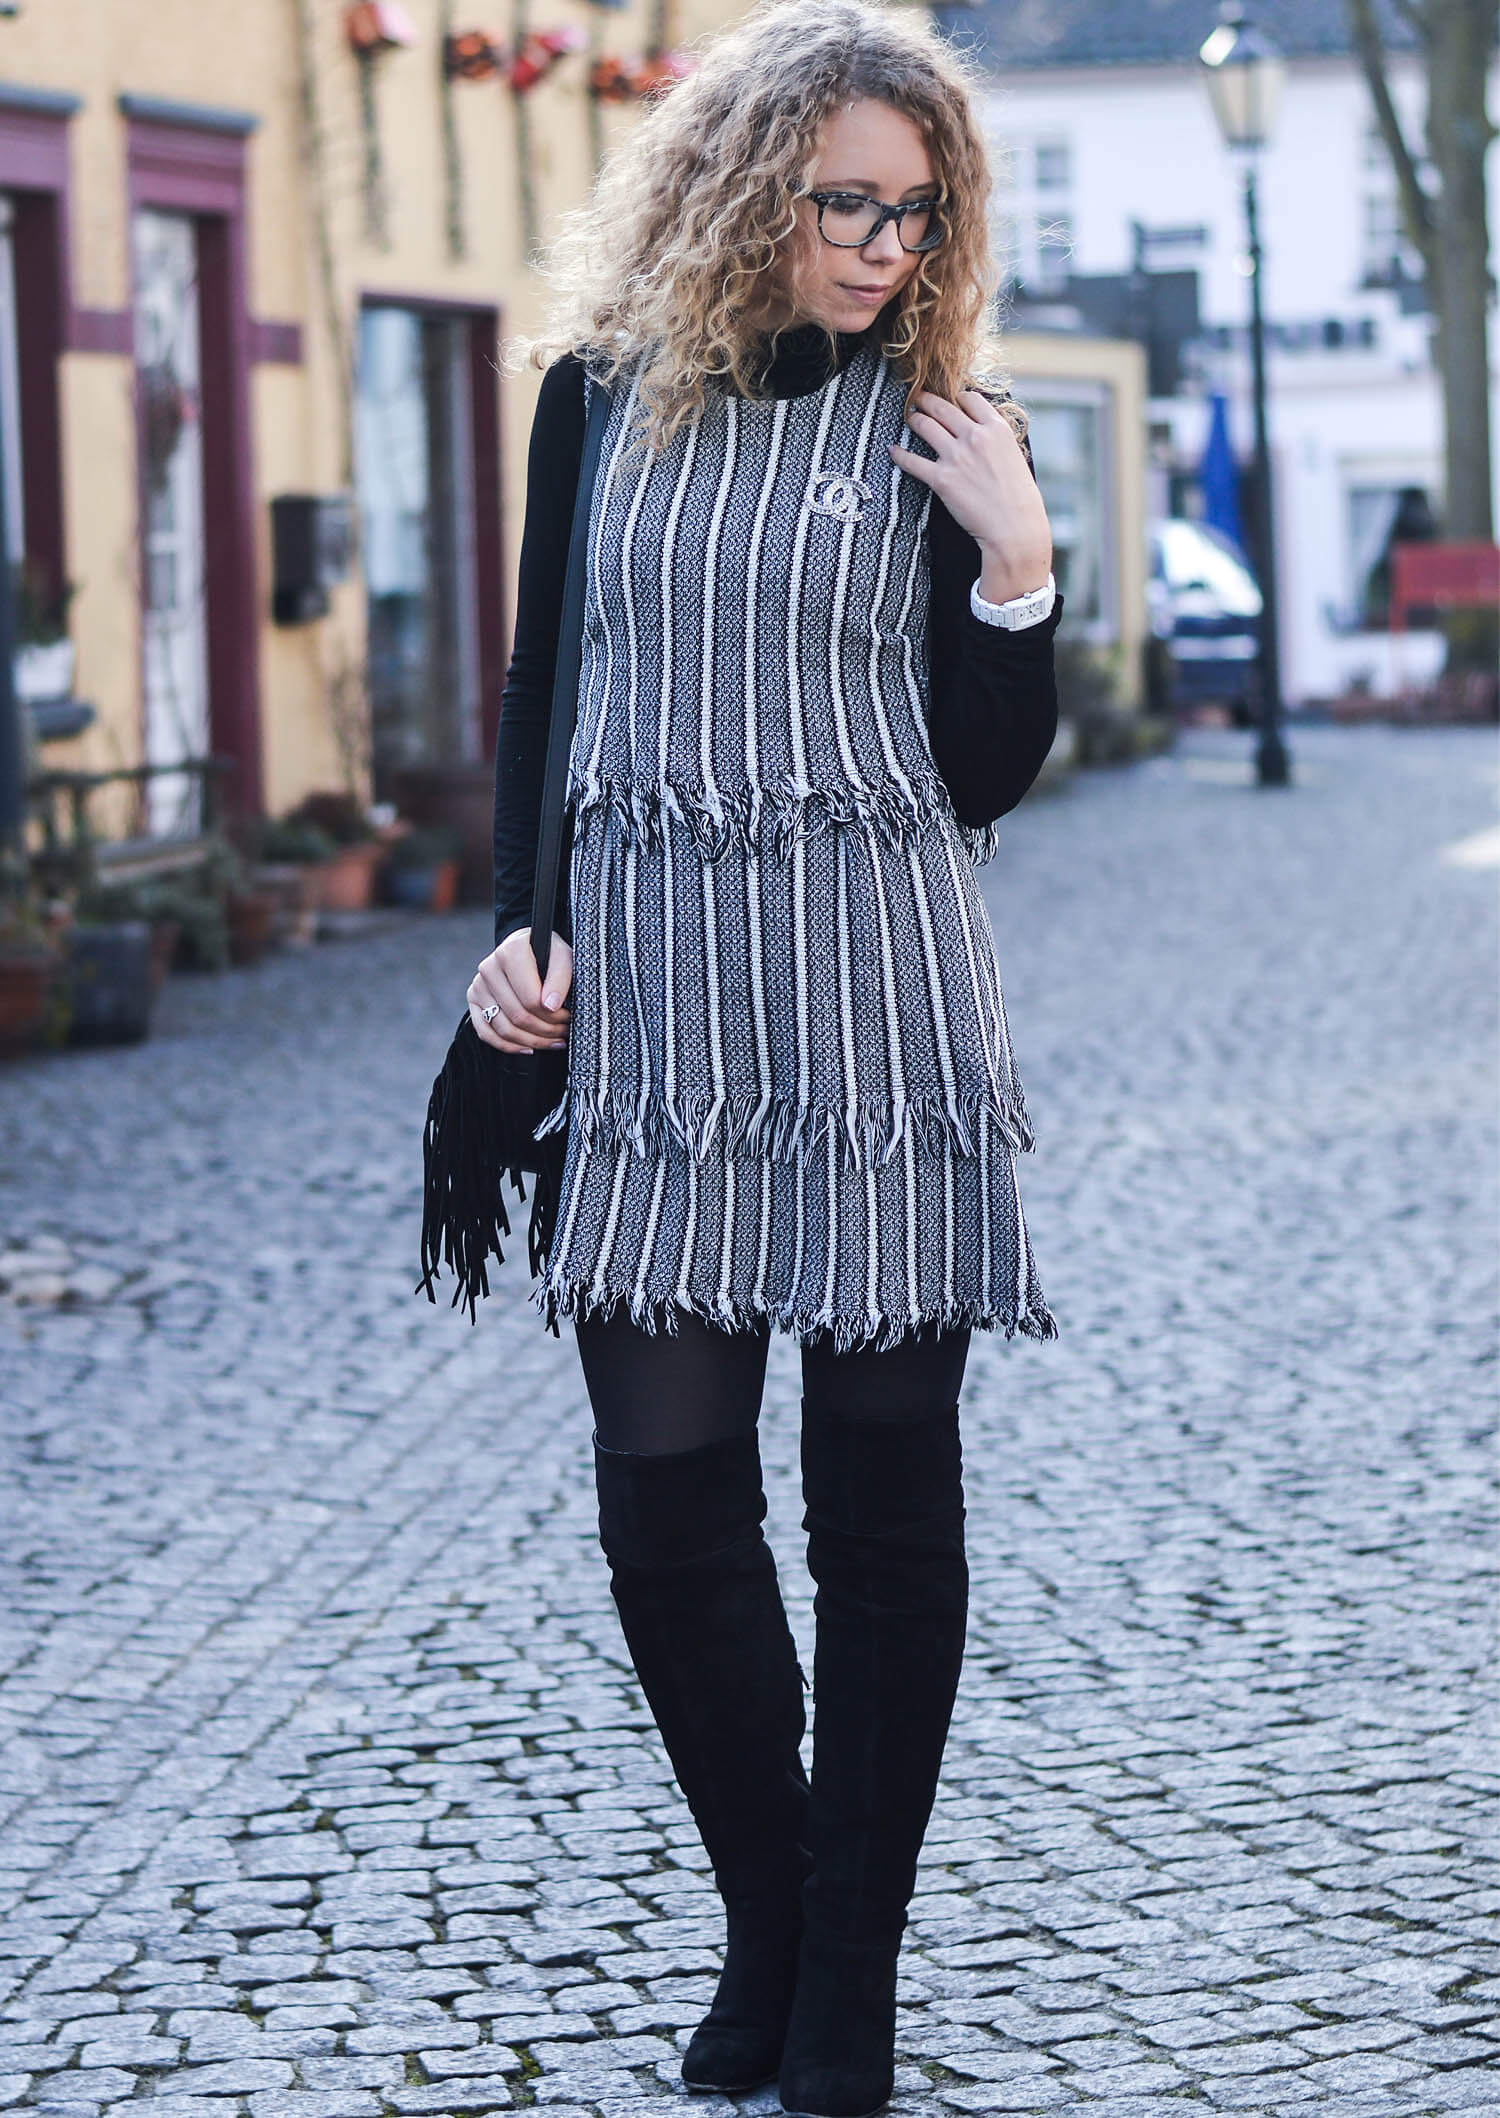 Kationette-fashionblog-nrw-outfit-Tweed-Dress-Chanel-Brooch-Overknees-streetstyle-curls